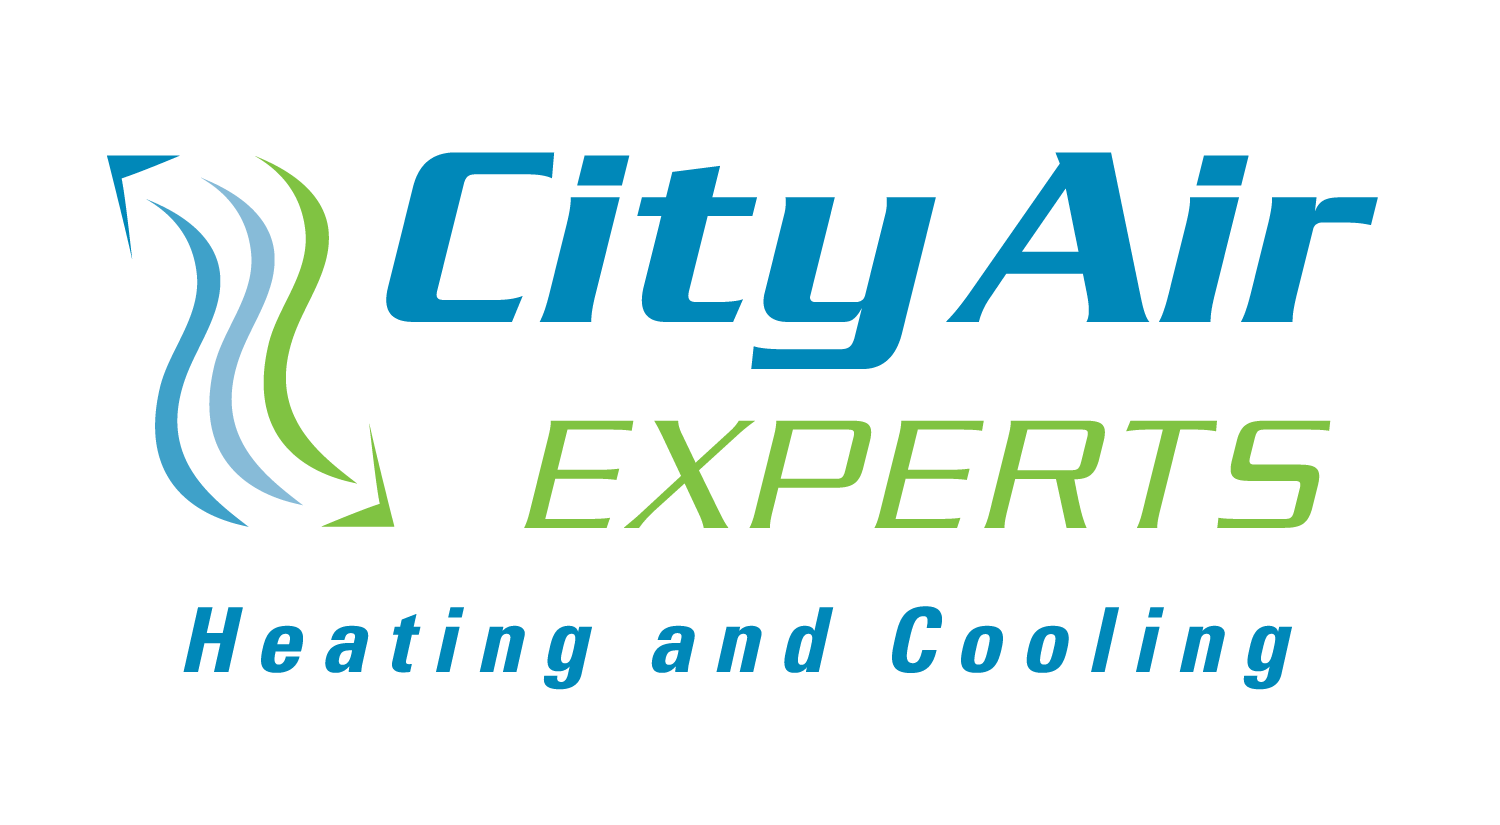 City of Experts is THE marketing arm to make strategic connections to organizations that need you. You'll gain exposure to a variety of organizations & media through countless marketing opportunities.